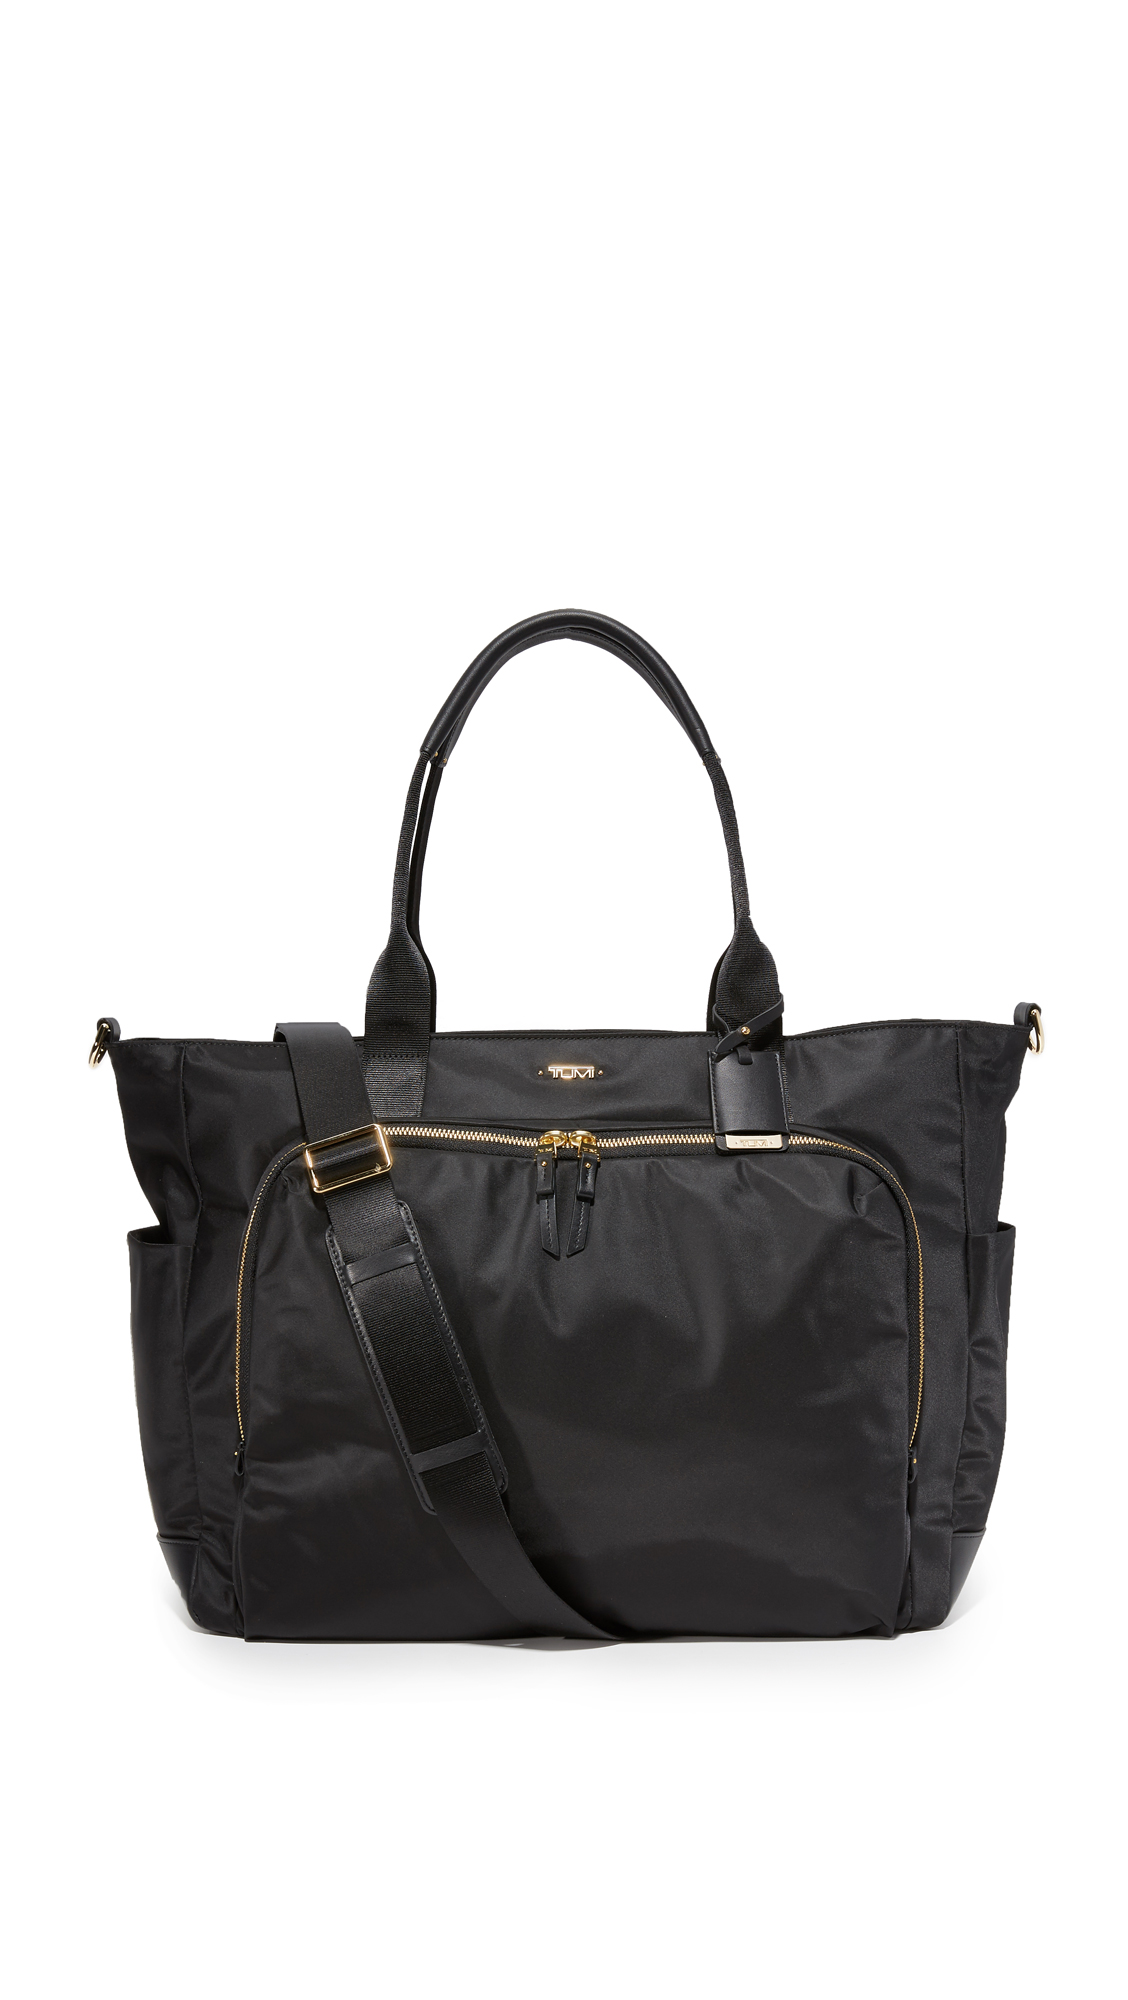 Designer Weekend Bags